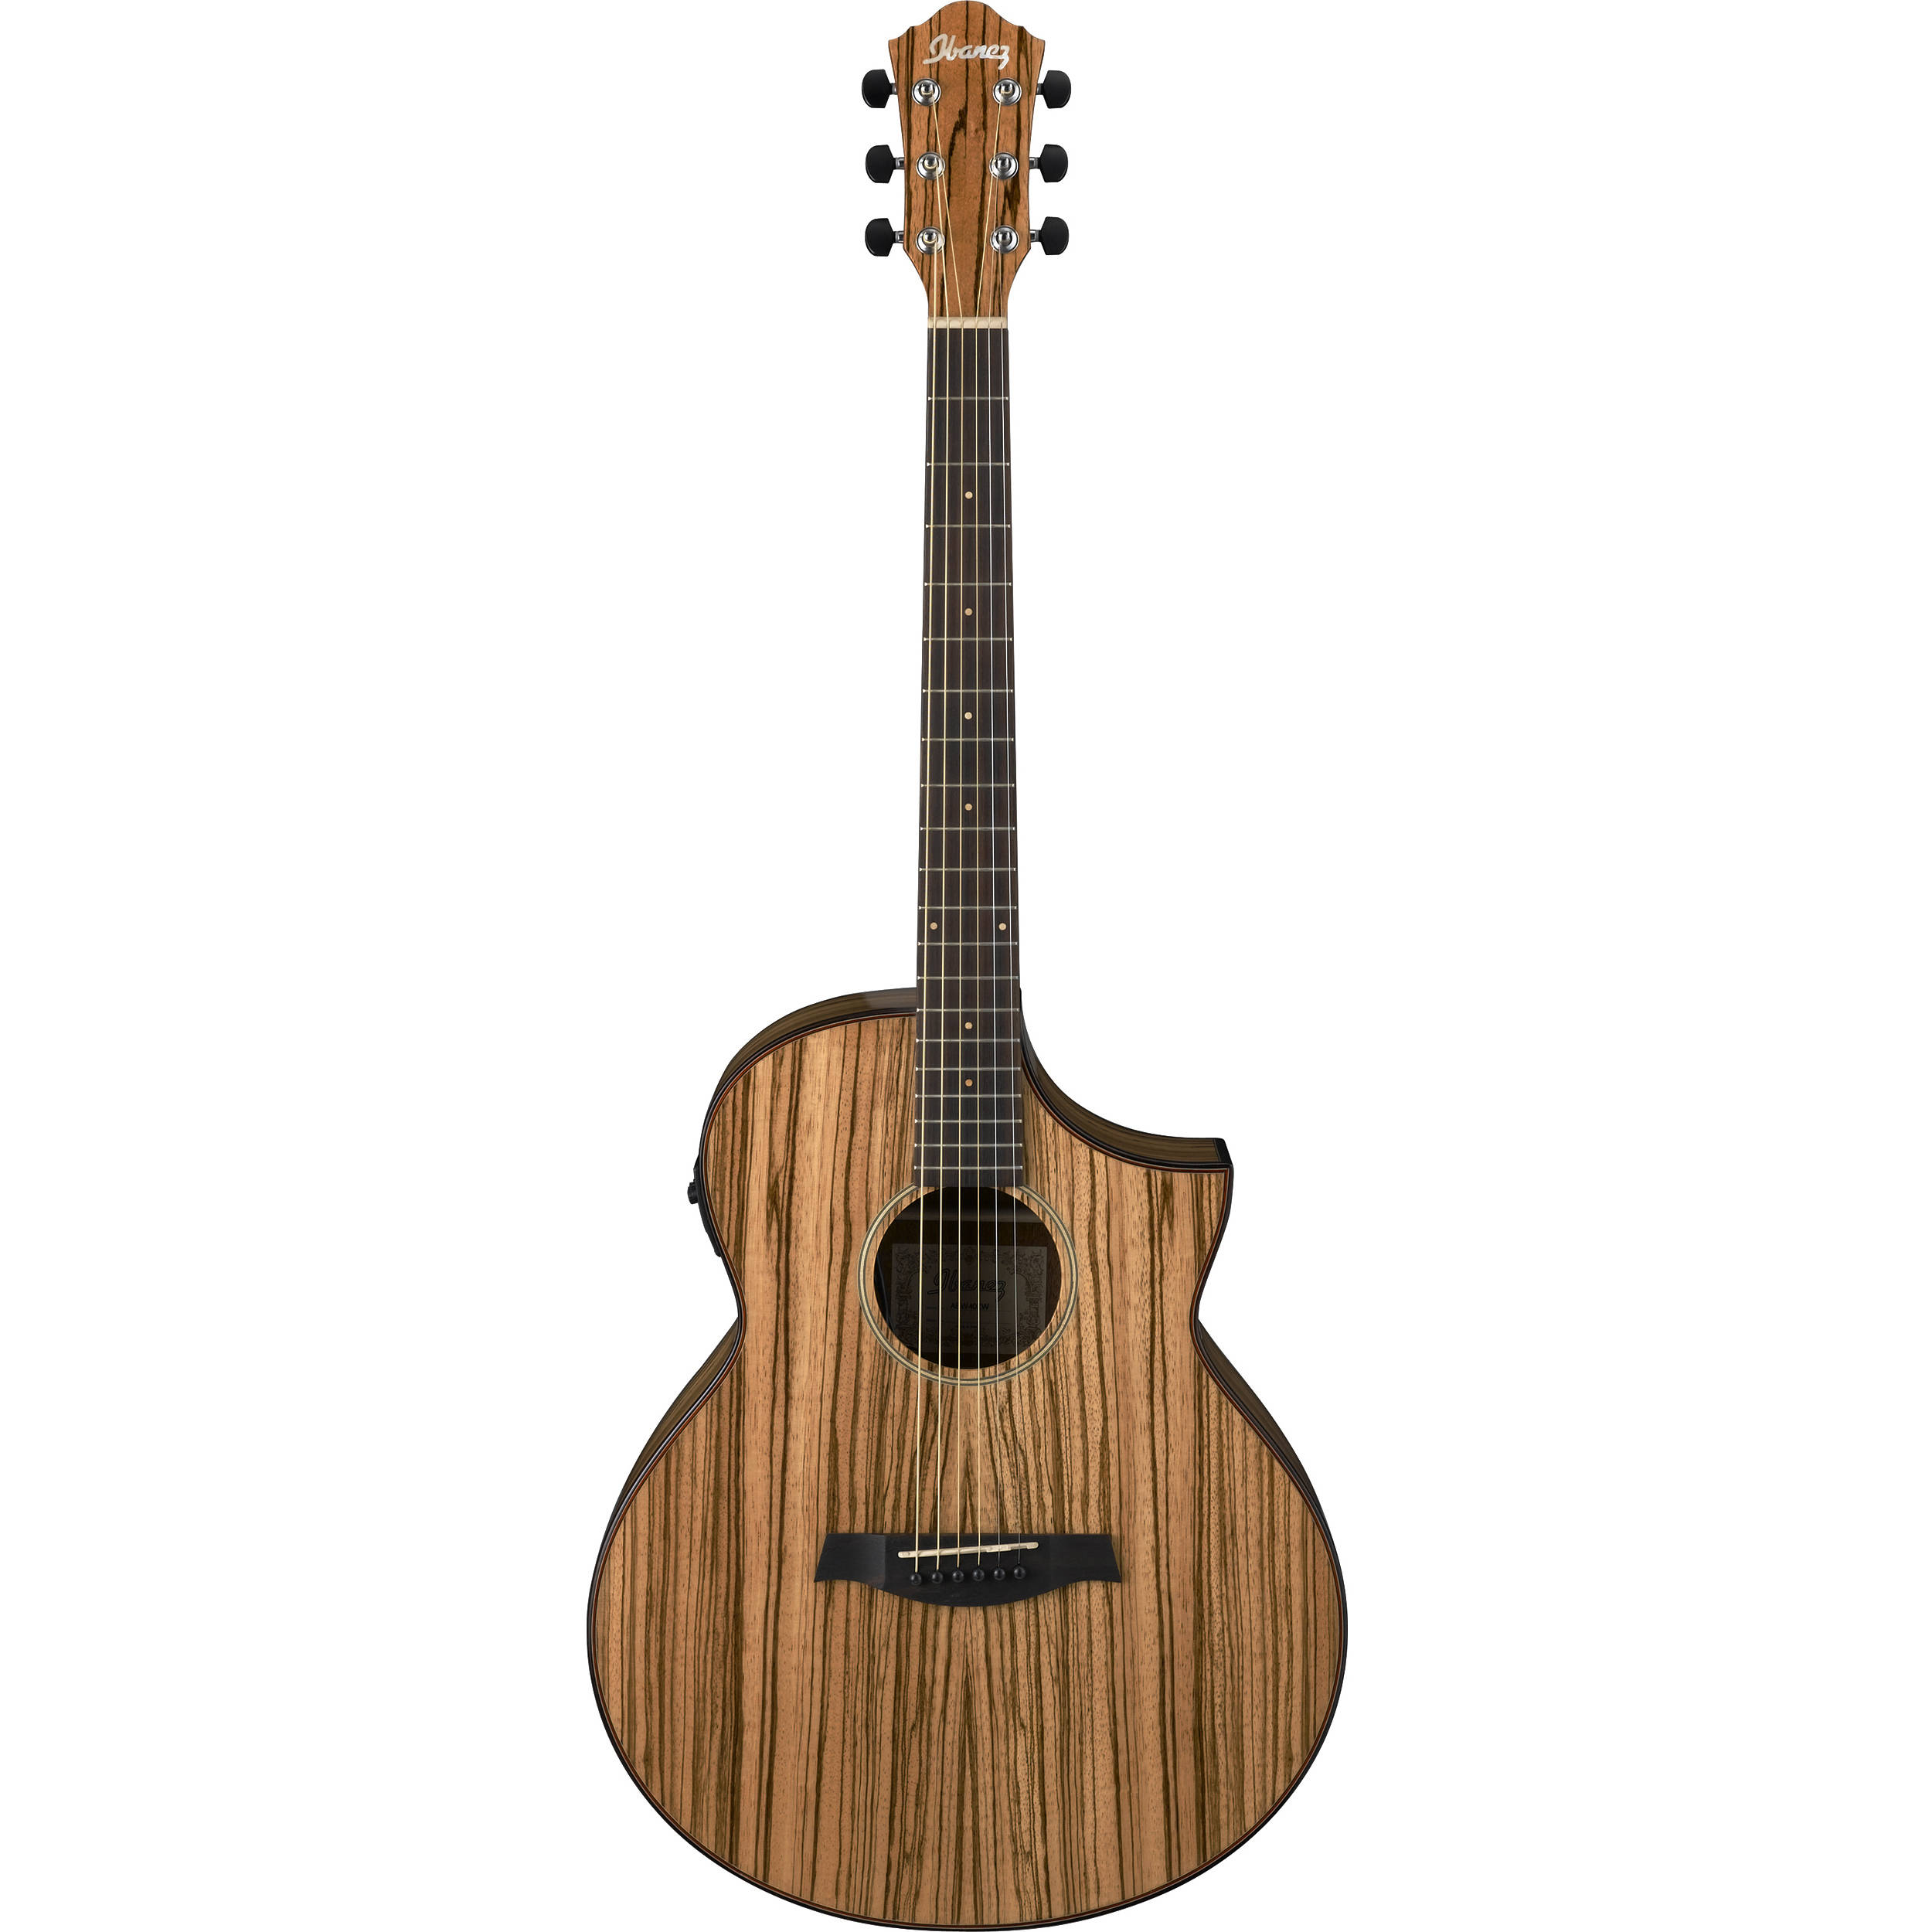 ibanez aew40zwnt exotic wood series acoustic electric aew40zwnt. Black Bedroom Furniture Sets. Home Design Ideas